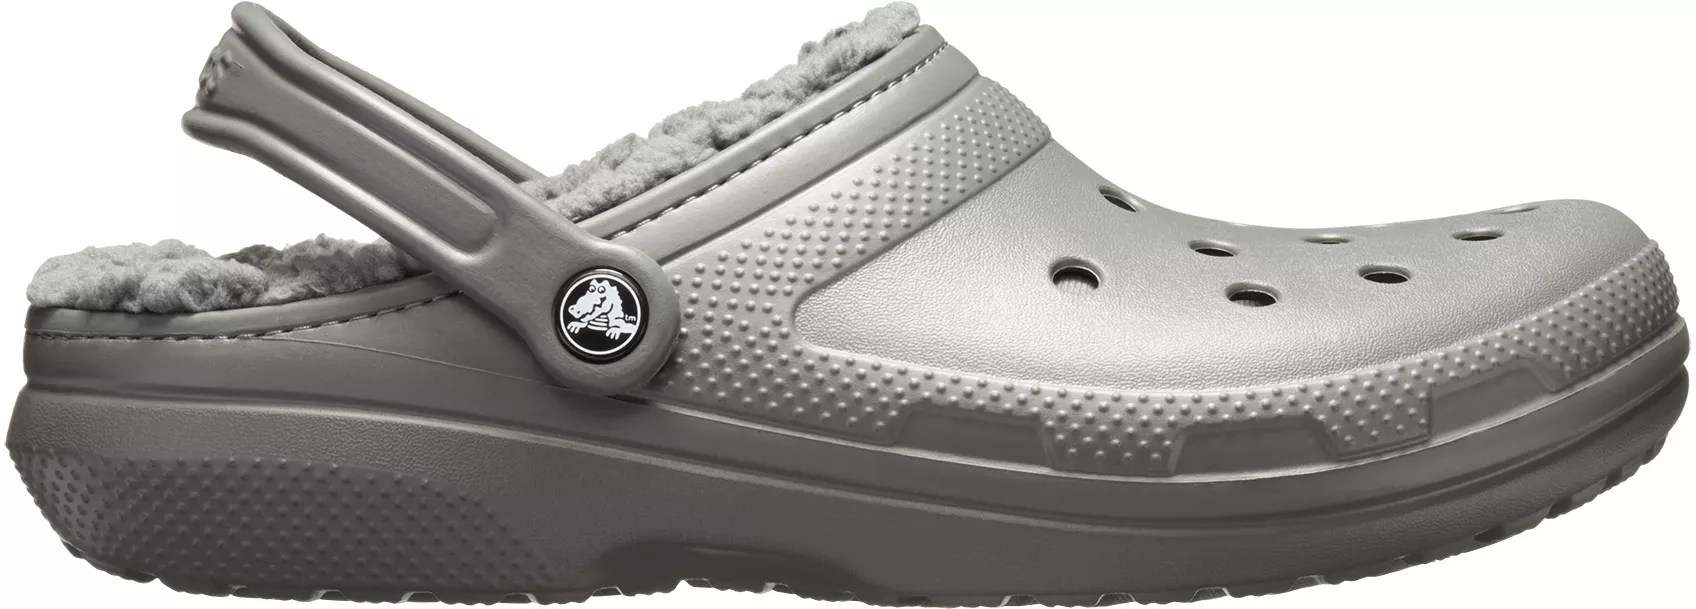 Crocs Adult Classic Fuzz Lined Clogs Dick S Sporting Goods